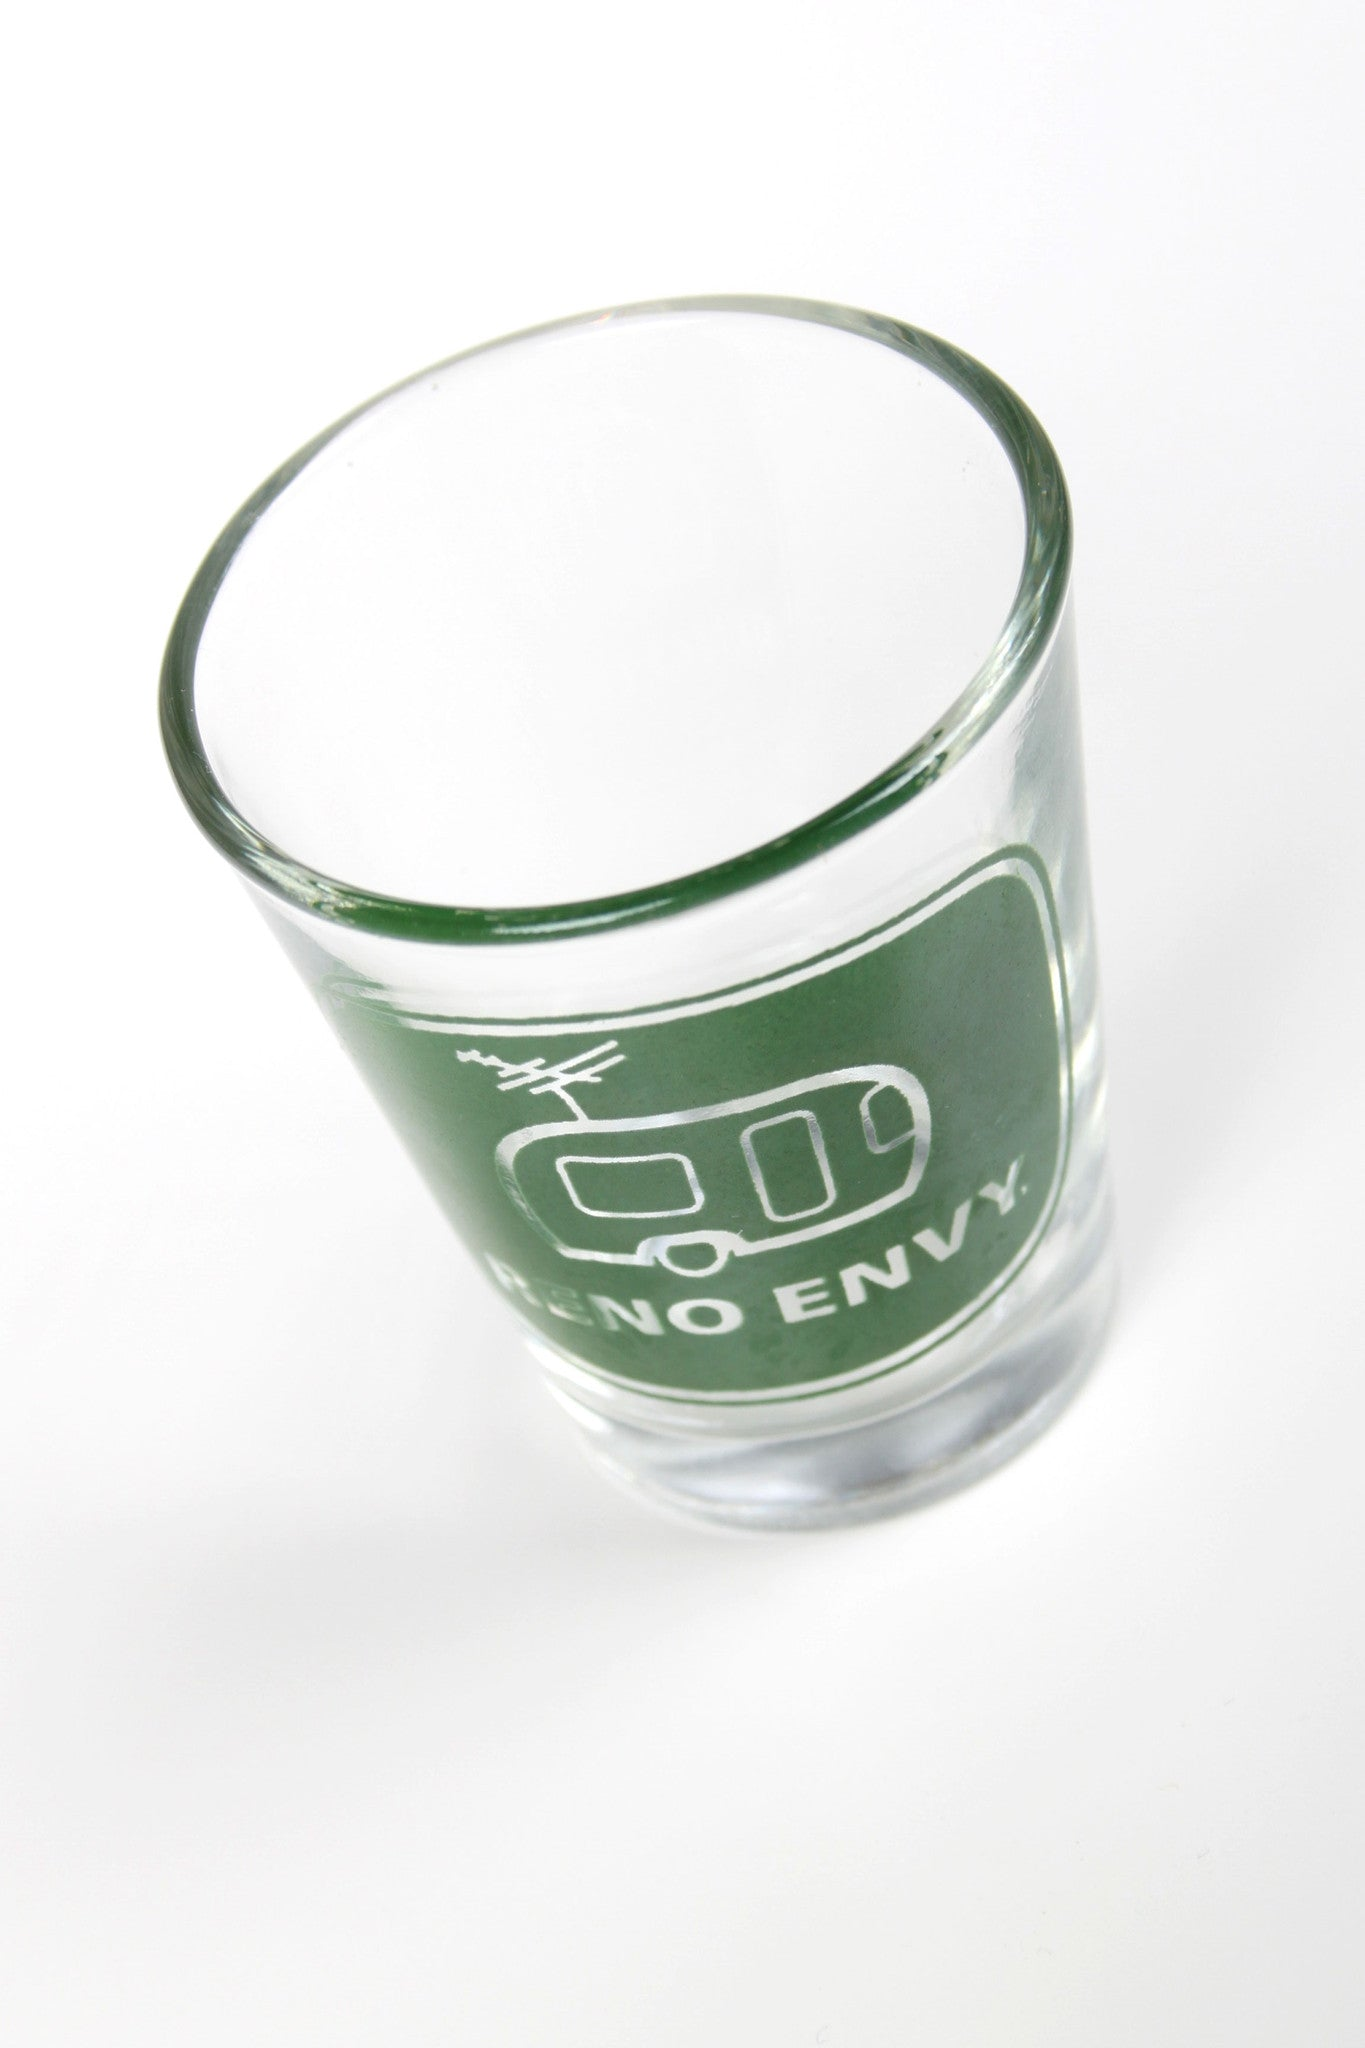 Shot Glass: Reno eNVy Trailer (Green)